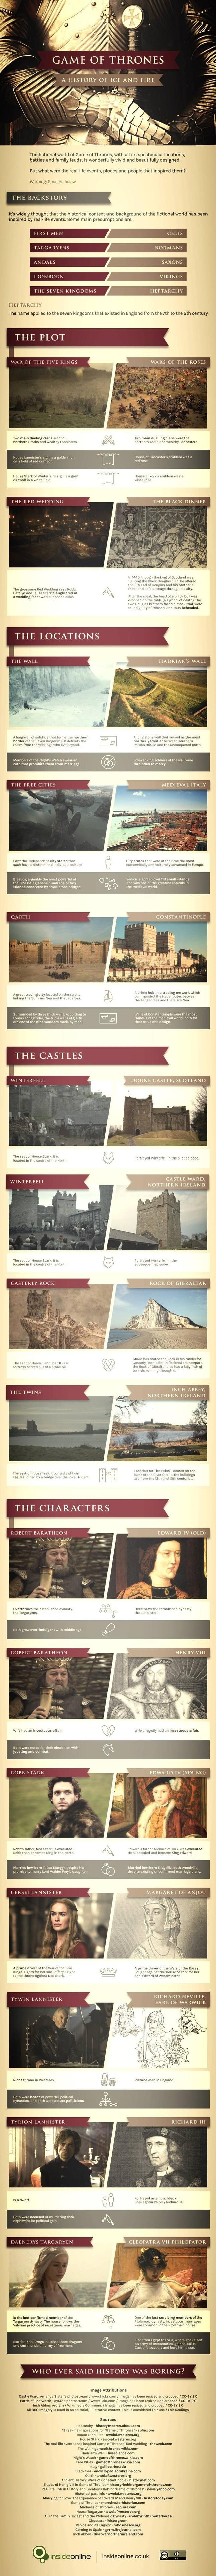 Game of Thrones Historical Inspiration